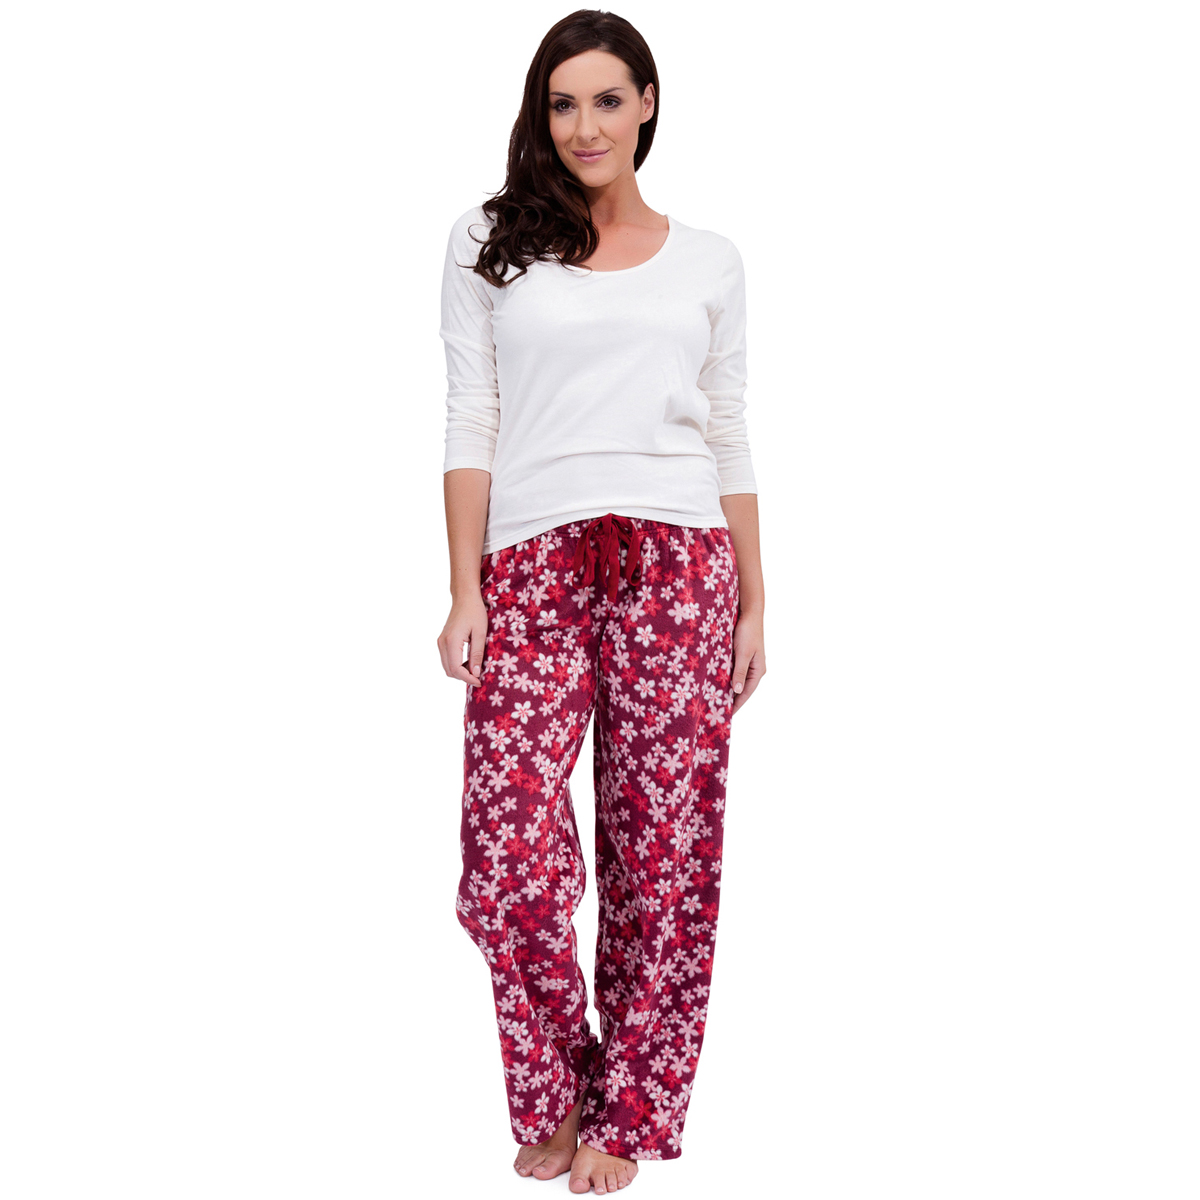 Find a great selection of pajamas for women at makeshop-zpnxx1b0.cf Shop short pajamas, knit pajamas and more from the best brands. Free shipping and returns.